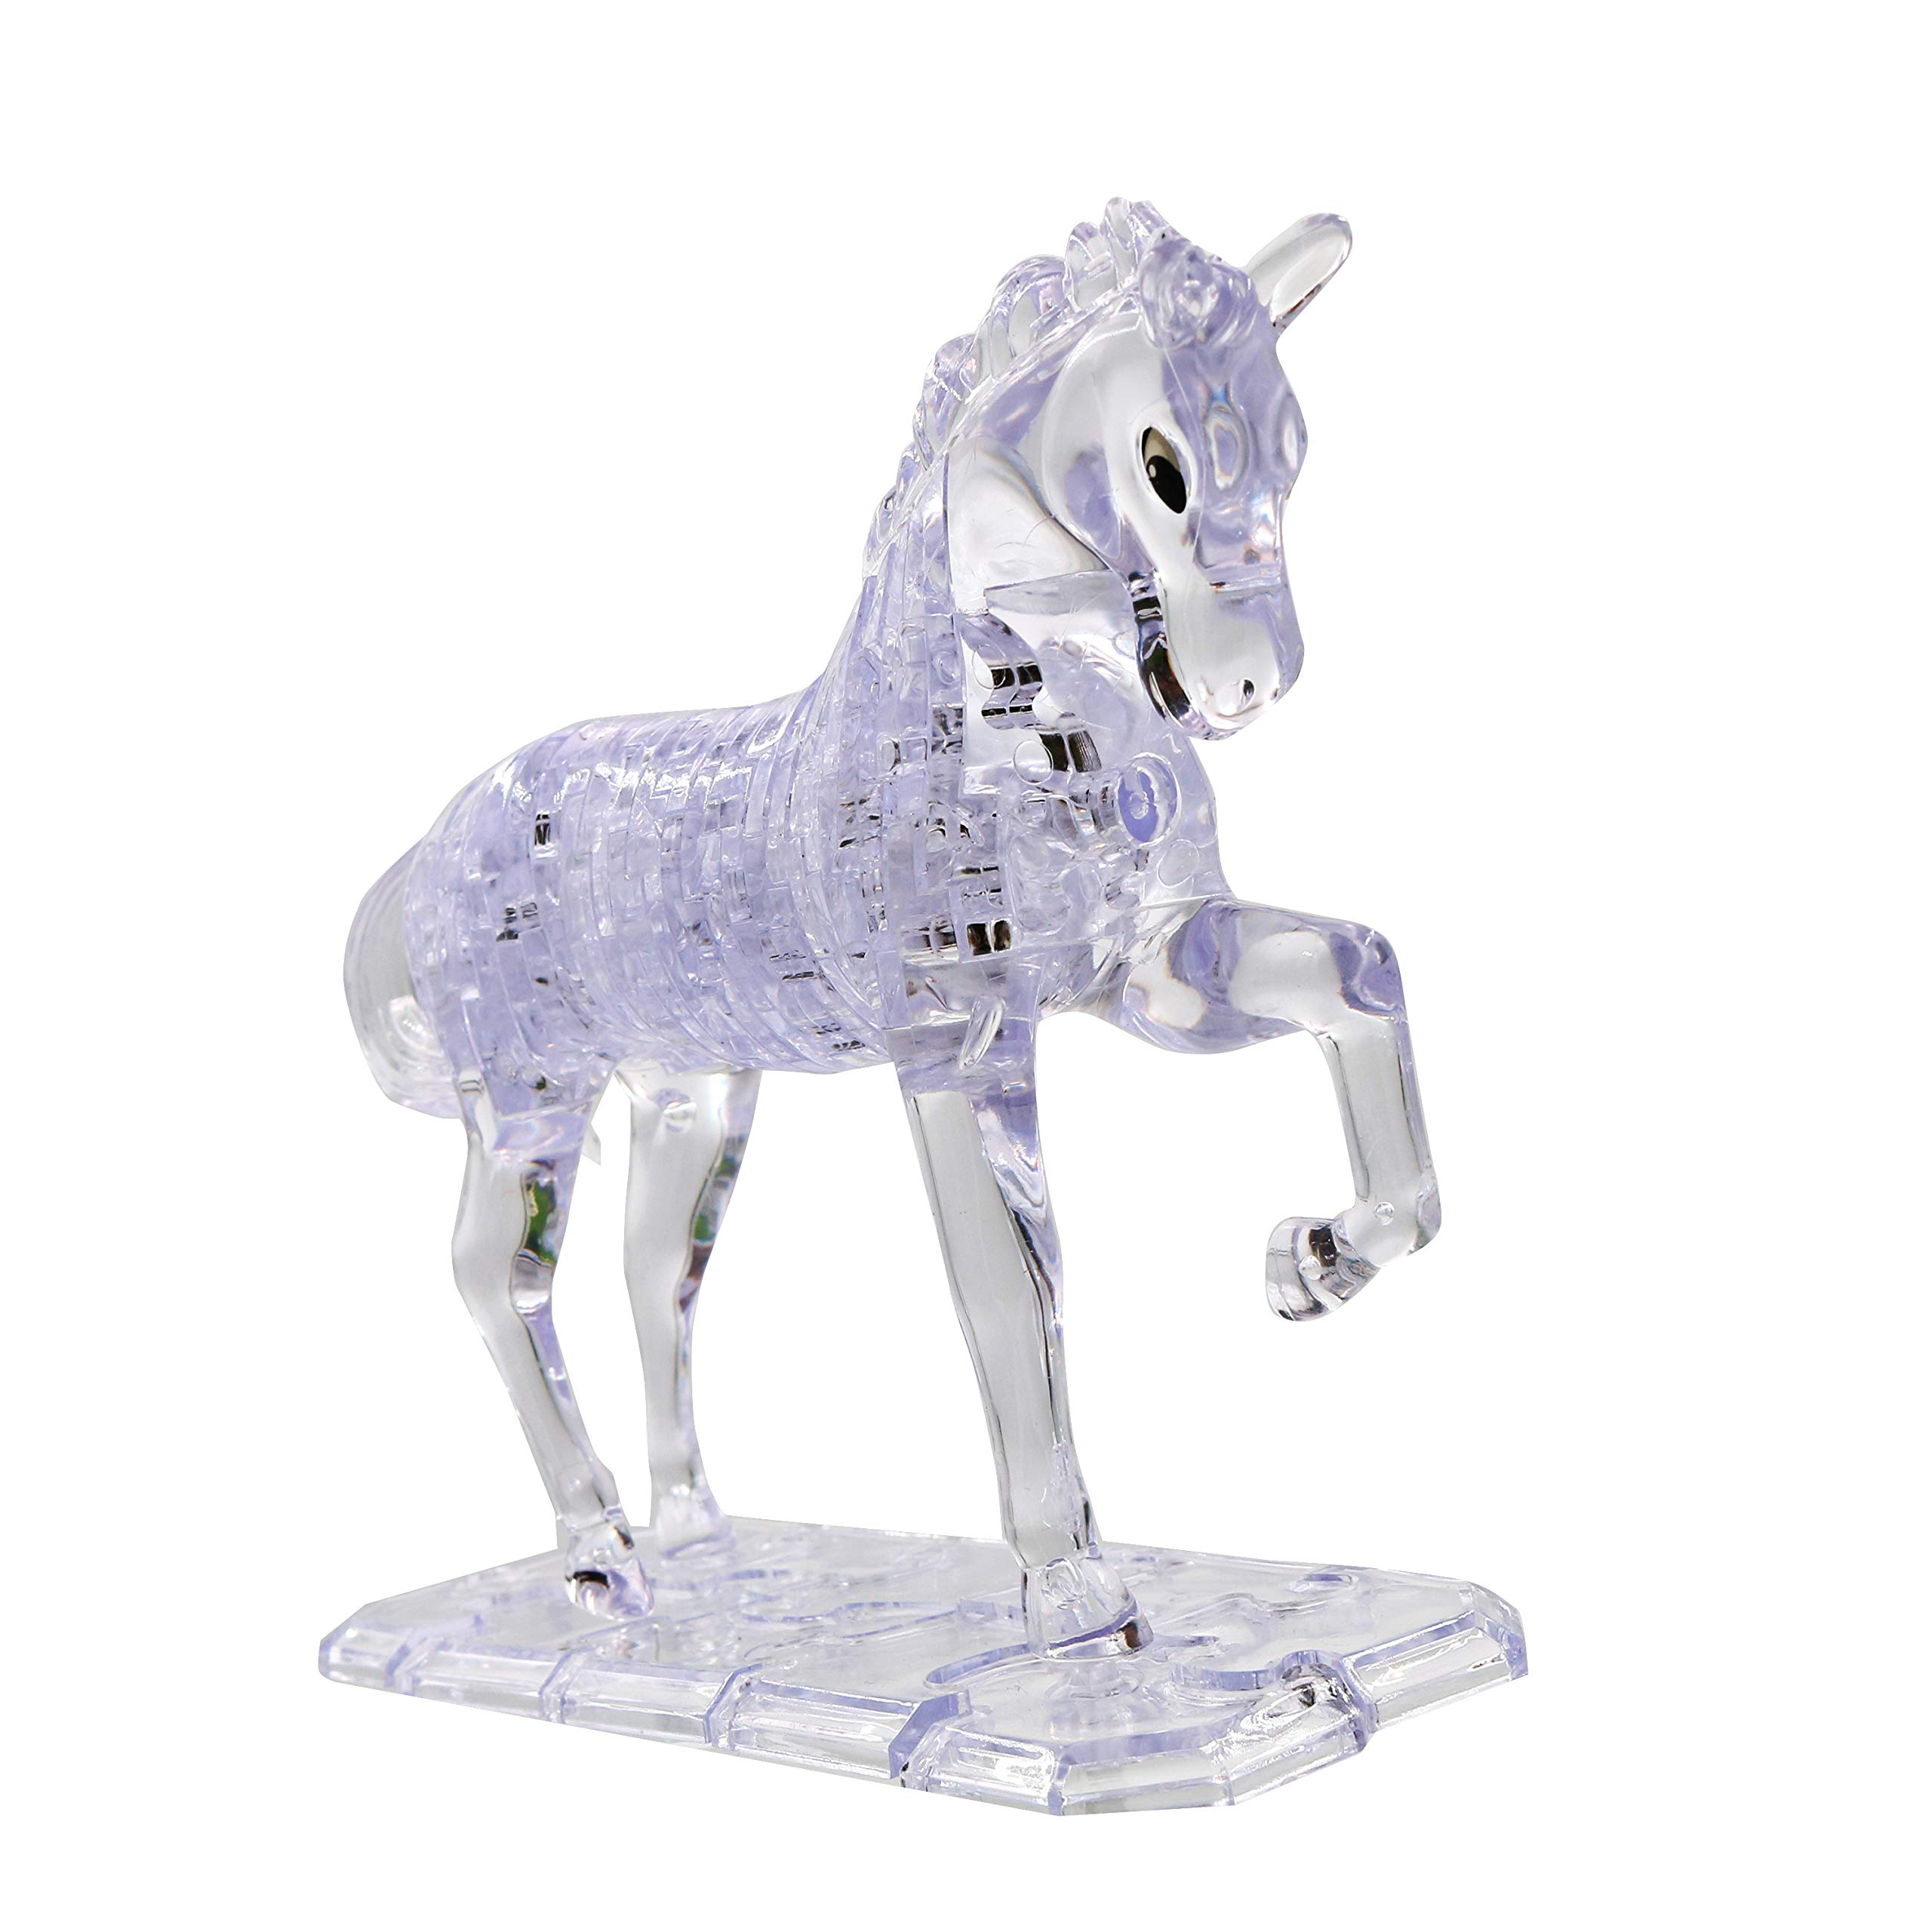 39 Thermolove 3D Decoration Model Toy Crystal Puzzle Game Toy Horse/Beast/Unicorn/Sky Horse-Transparent